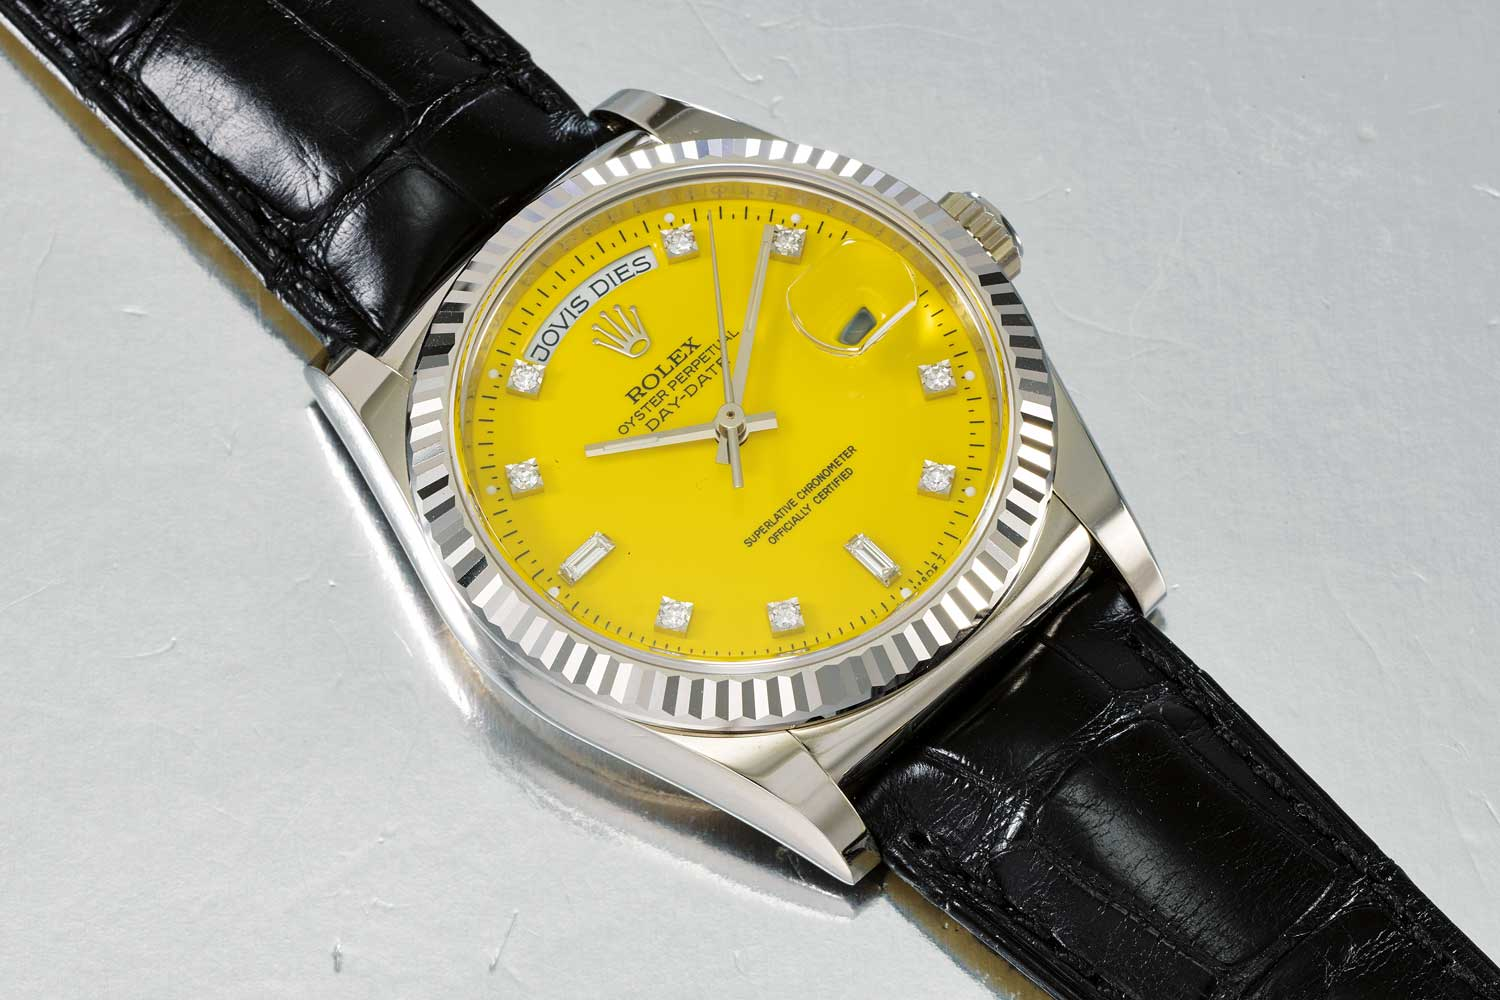 The 2013 white gold Day-date reference 118139 with specially commissioned Stella dial. The pictured Day-Date Ref. 118139 with yellow Stella diamond-set dial is one such watch and represents an über rare example. Like with most watches, sooner or later owners or descendants of owners decide to part with even the rarest pieces. One can almost bet on new record prices for these true trophies of Stella dials!